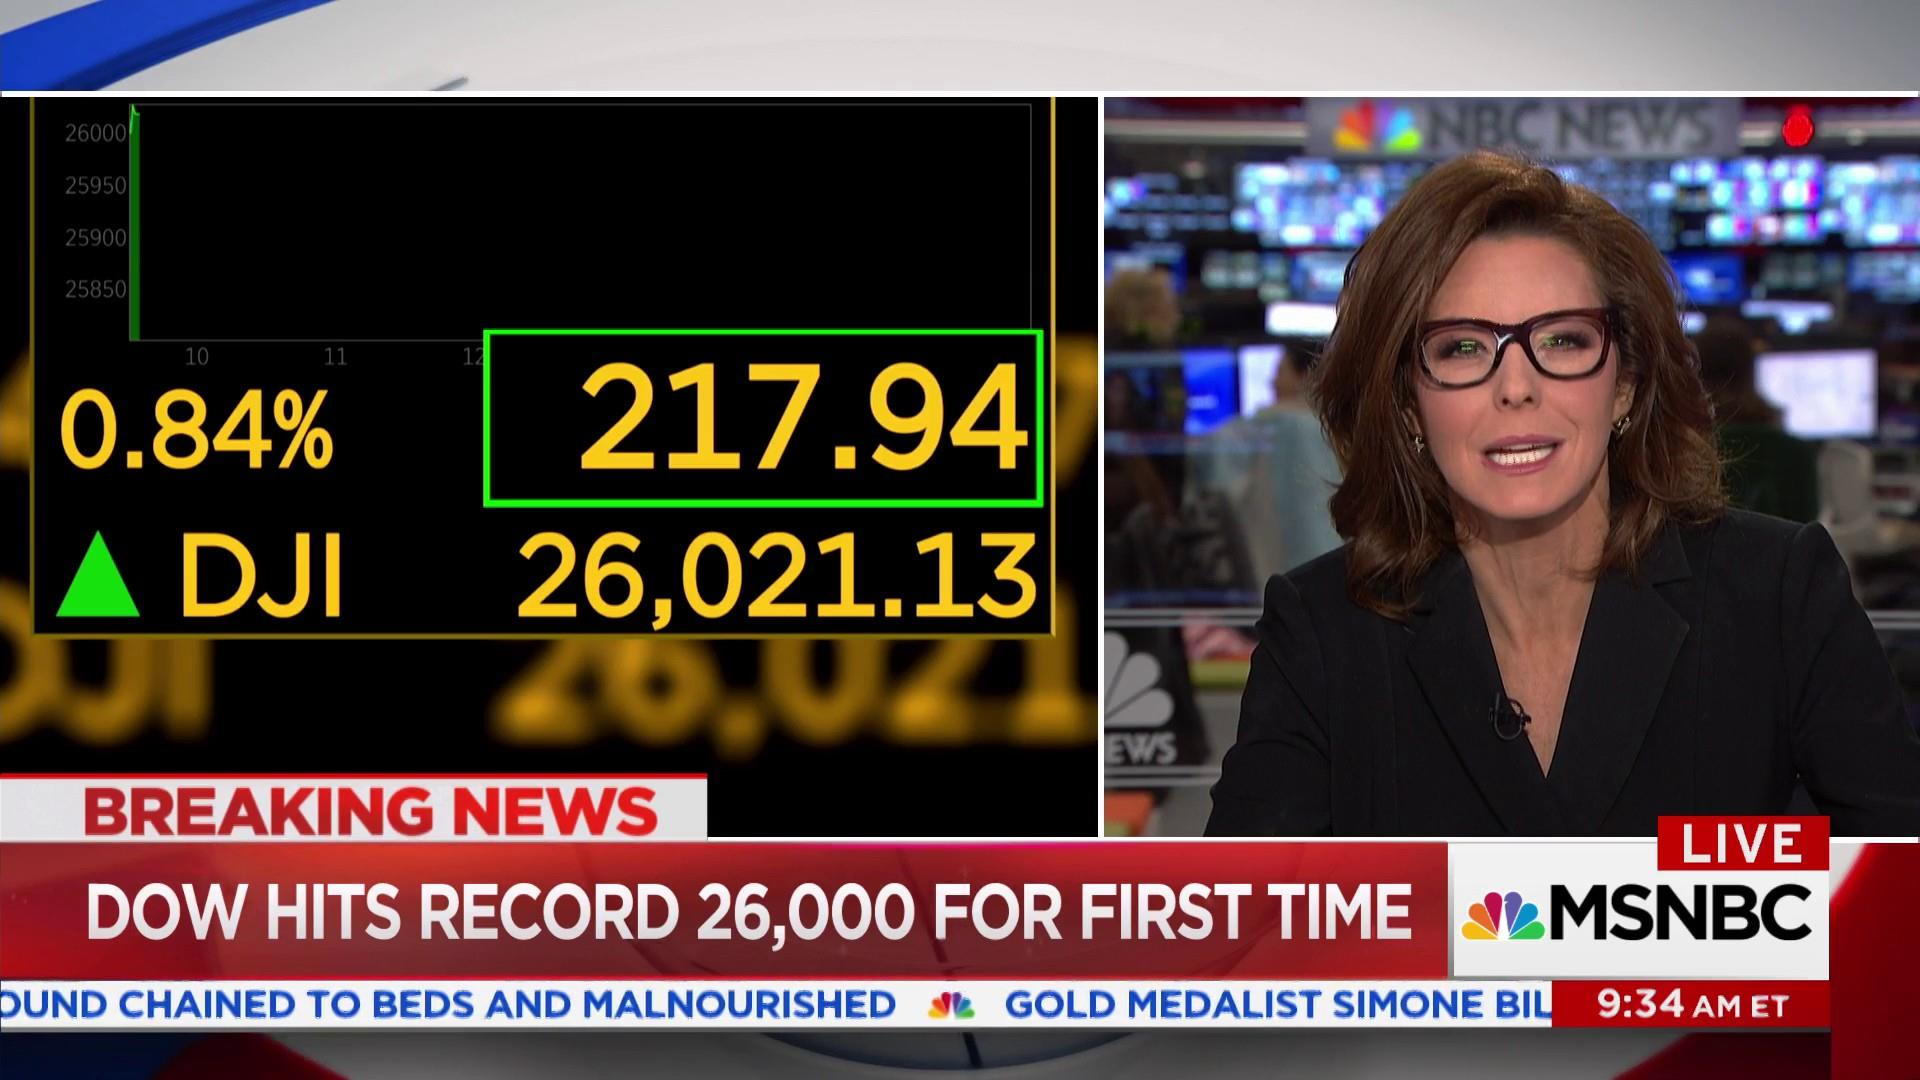 DOW Hits record 26,000 for first time